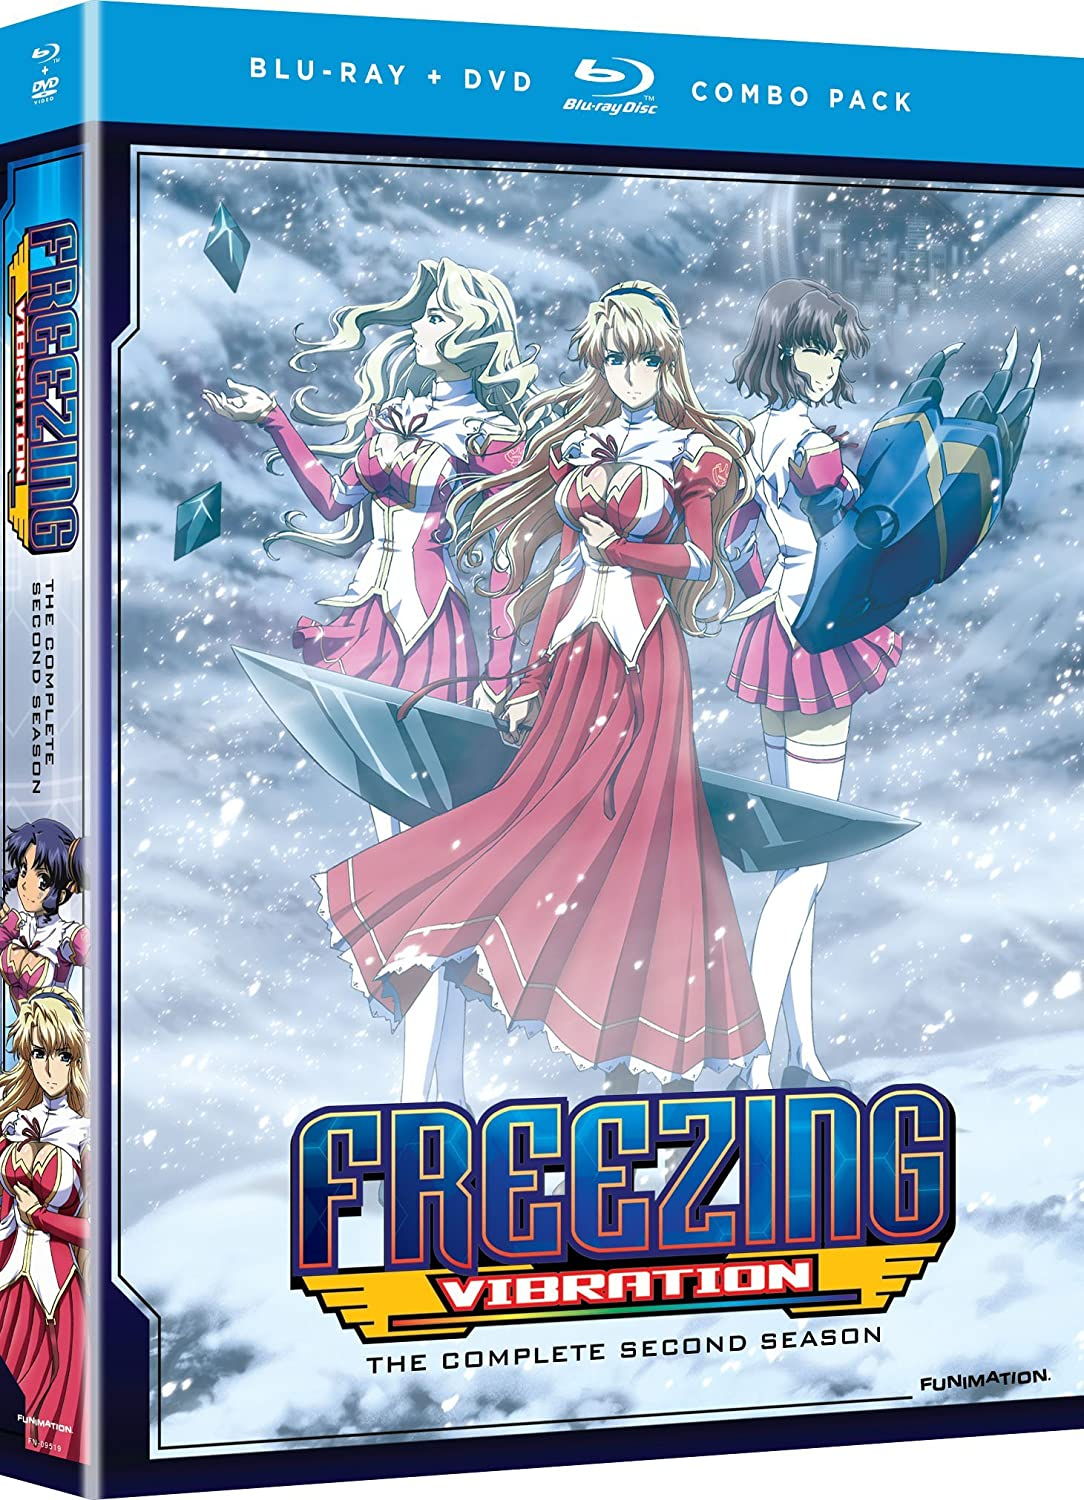 amazon com freezing vibration the complete 2nd season blu ray